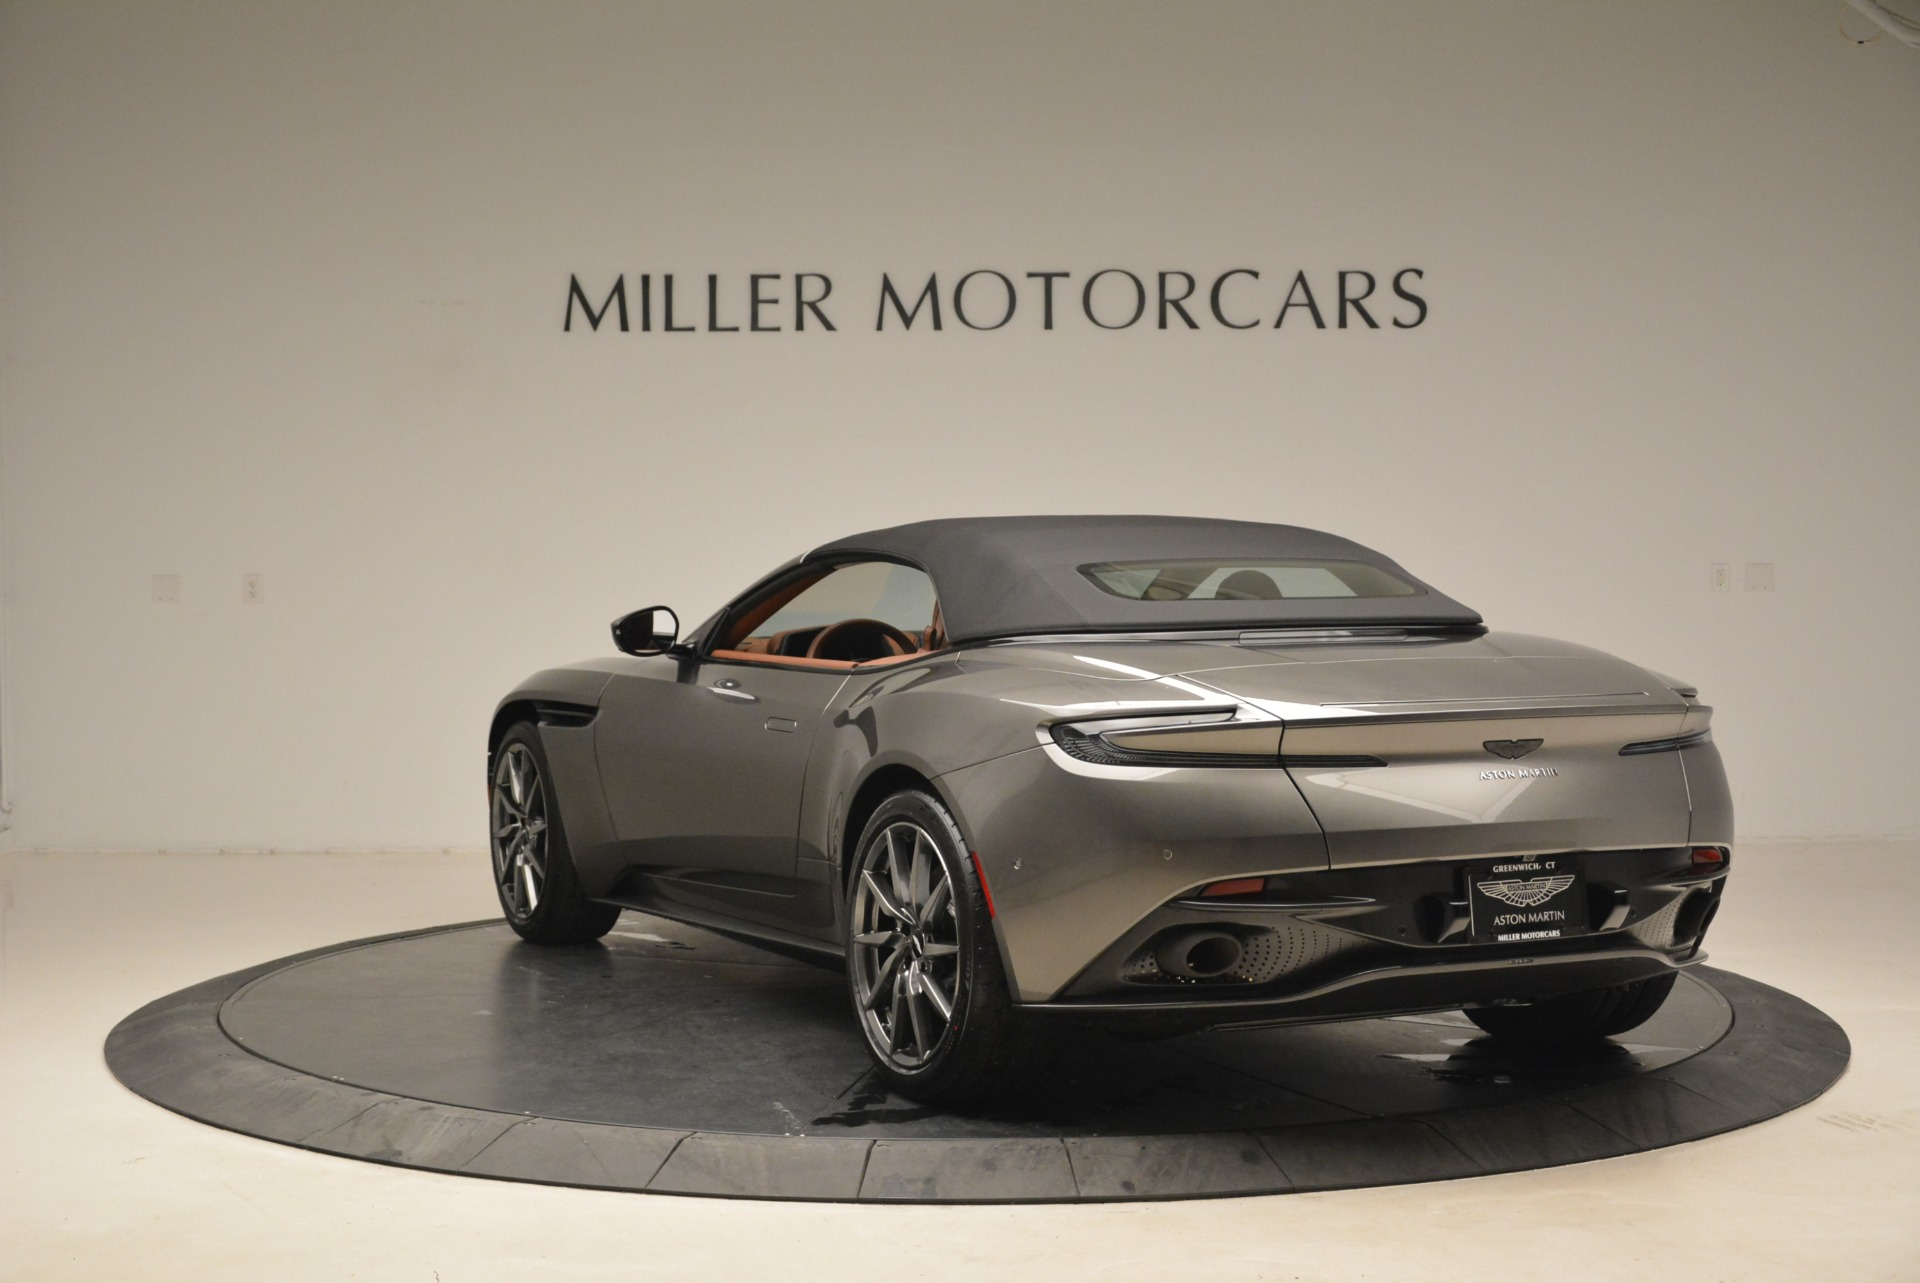 New 2019 Aston Martin DB11 Volante  For Sale In Greenwich, CT. Alfa Romeo of Greenwich, A1284 2209_p17